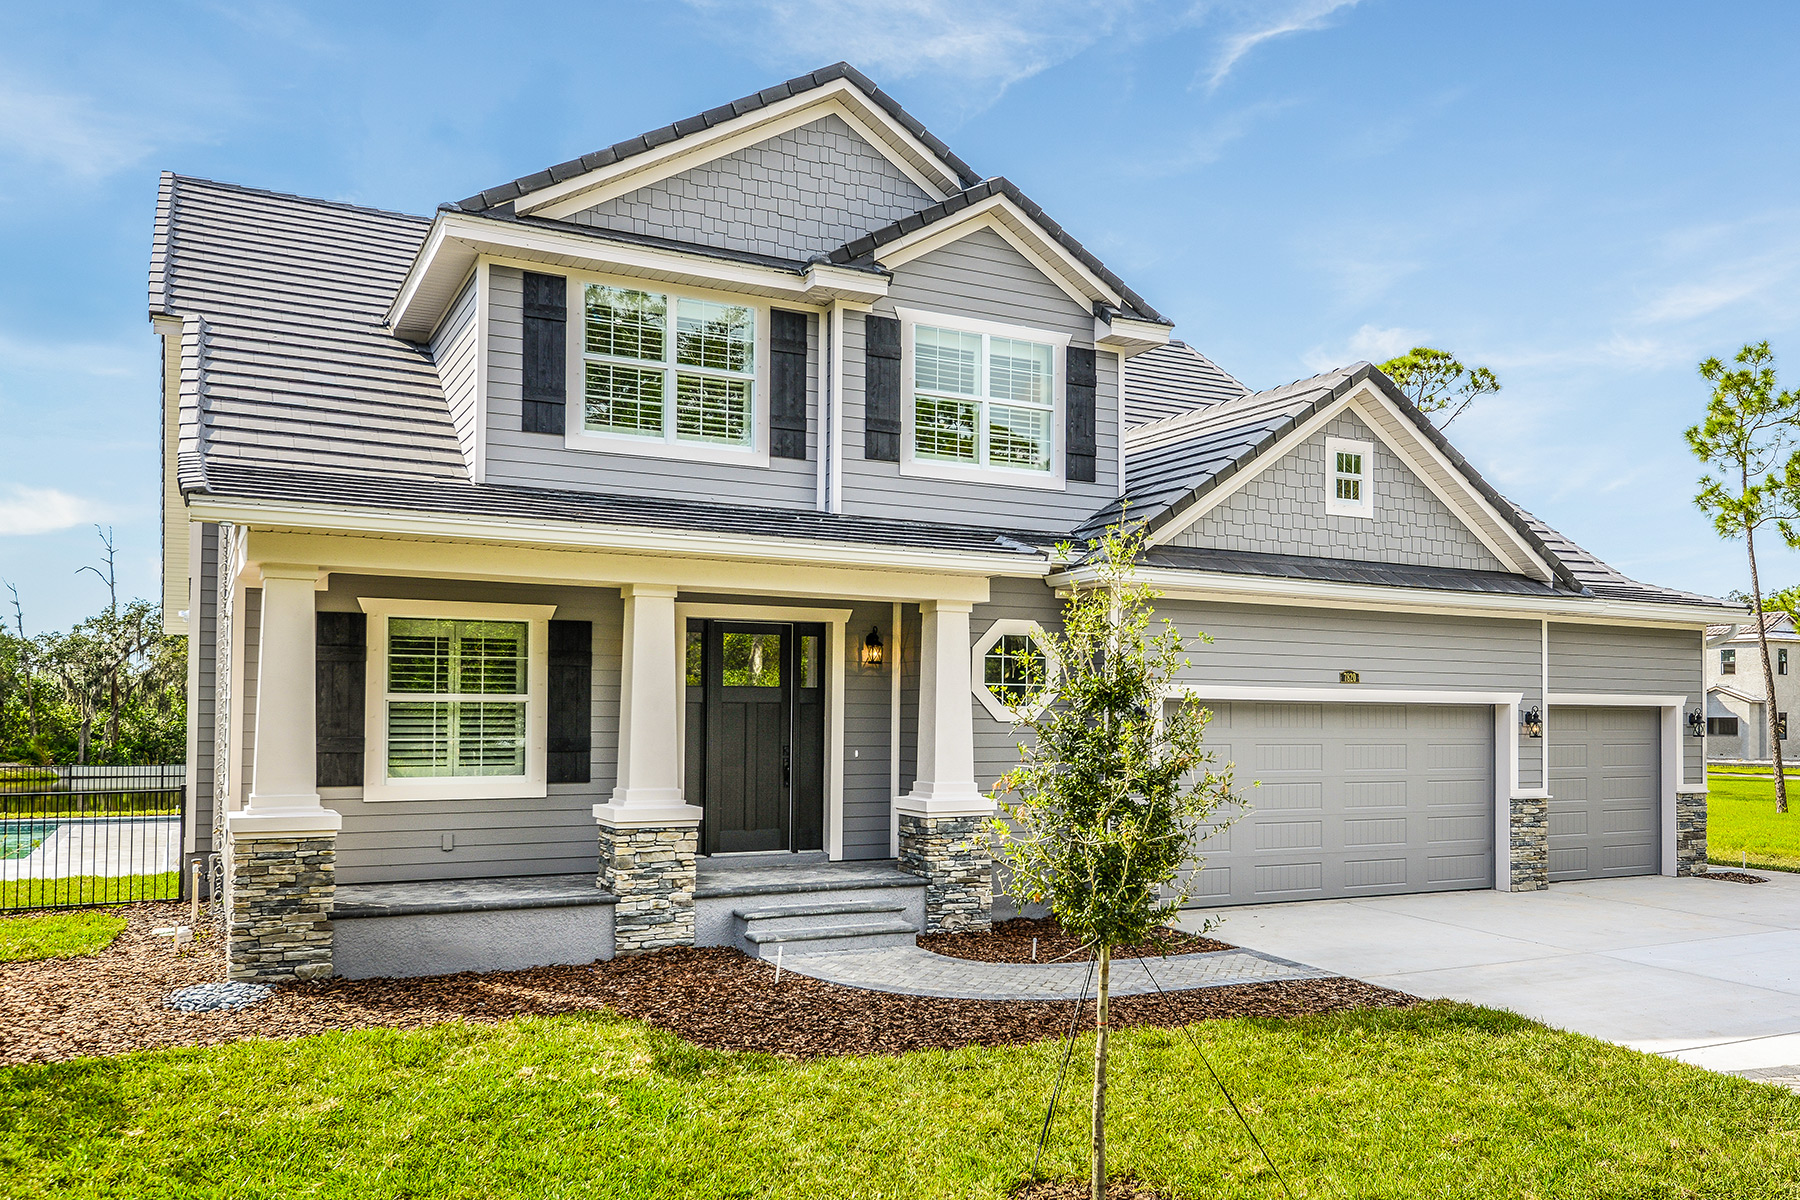 Southern traditional homes inc homemade ftempo for Southern homes florida